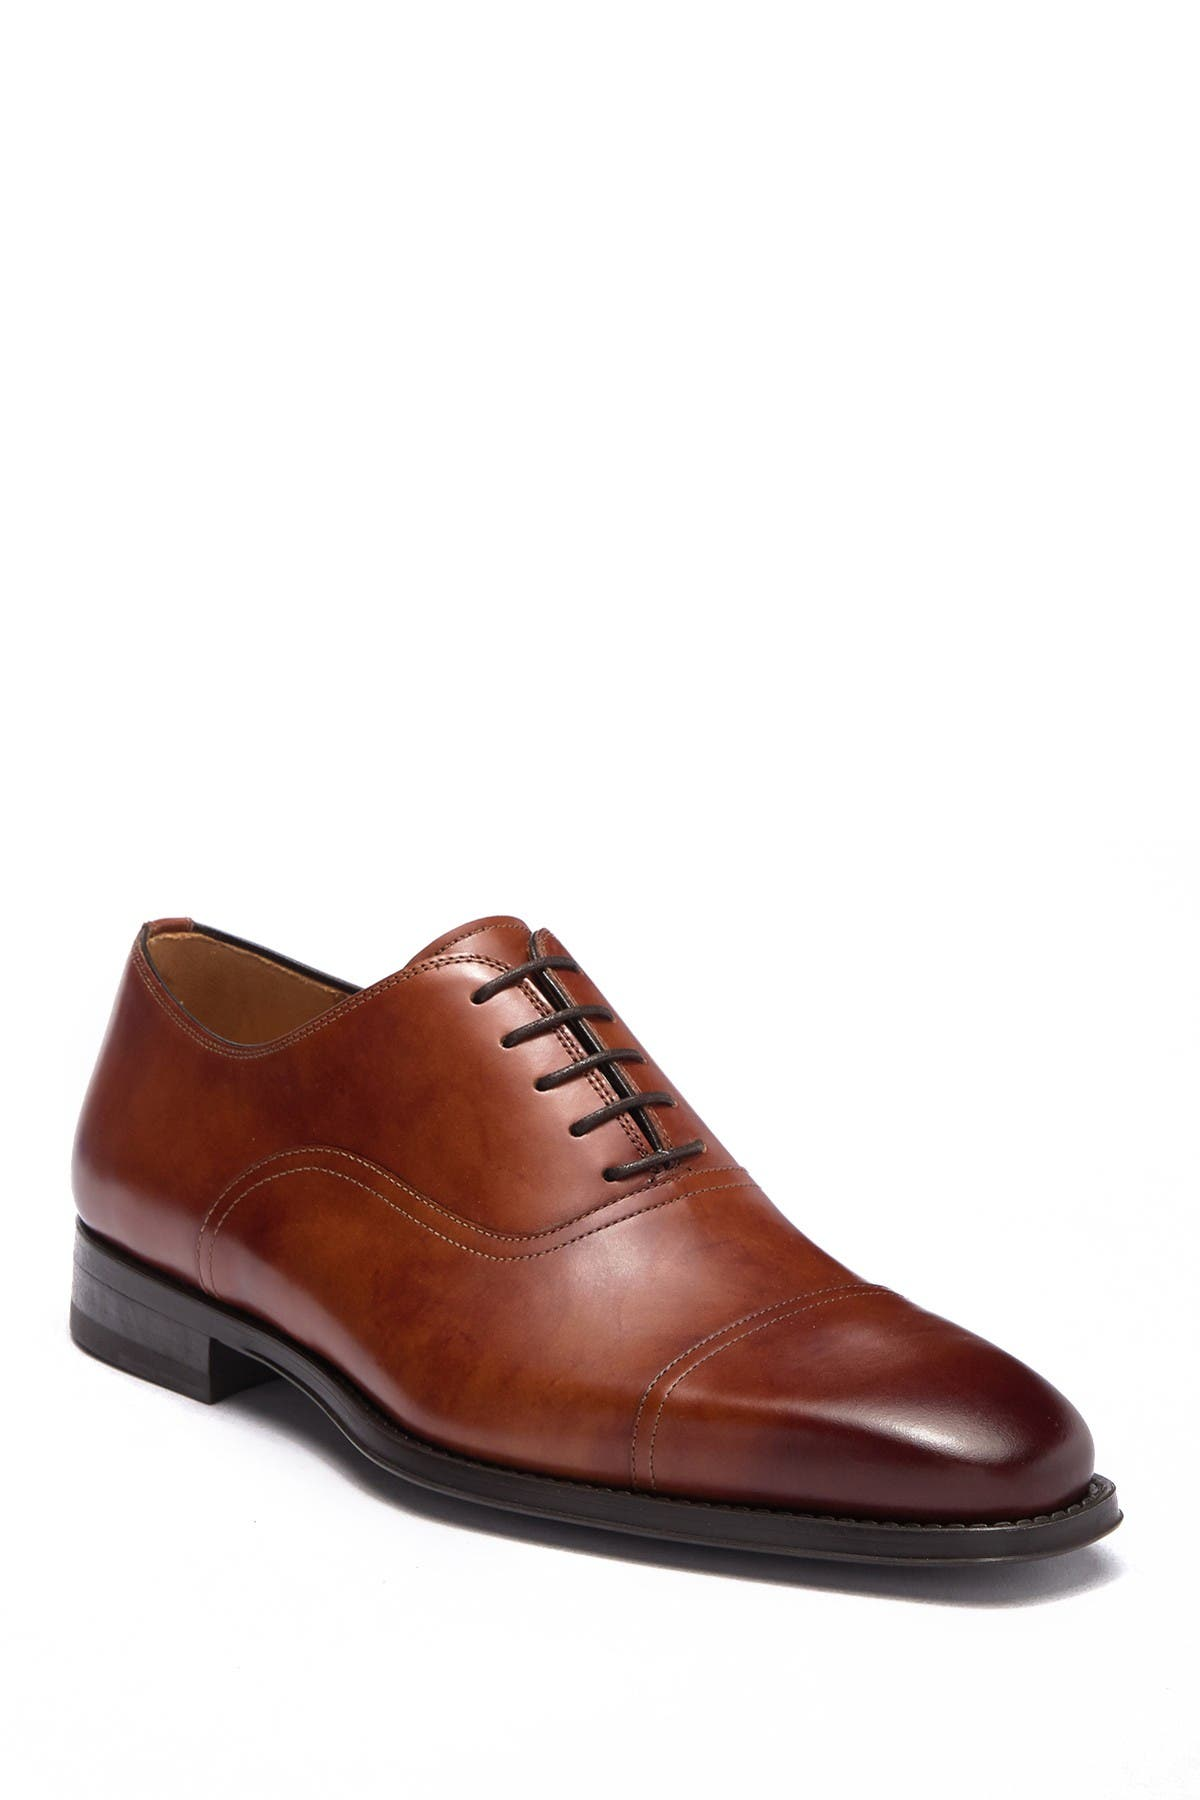 Image of Magnanni Lucas Leather Oxford